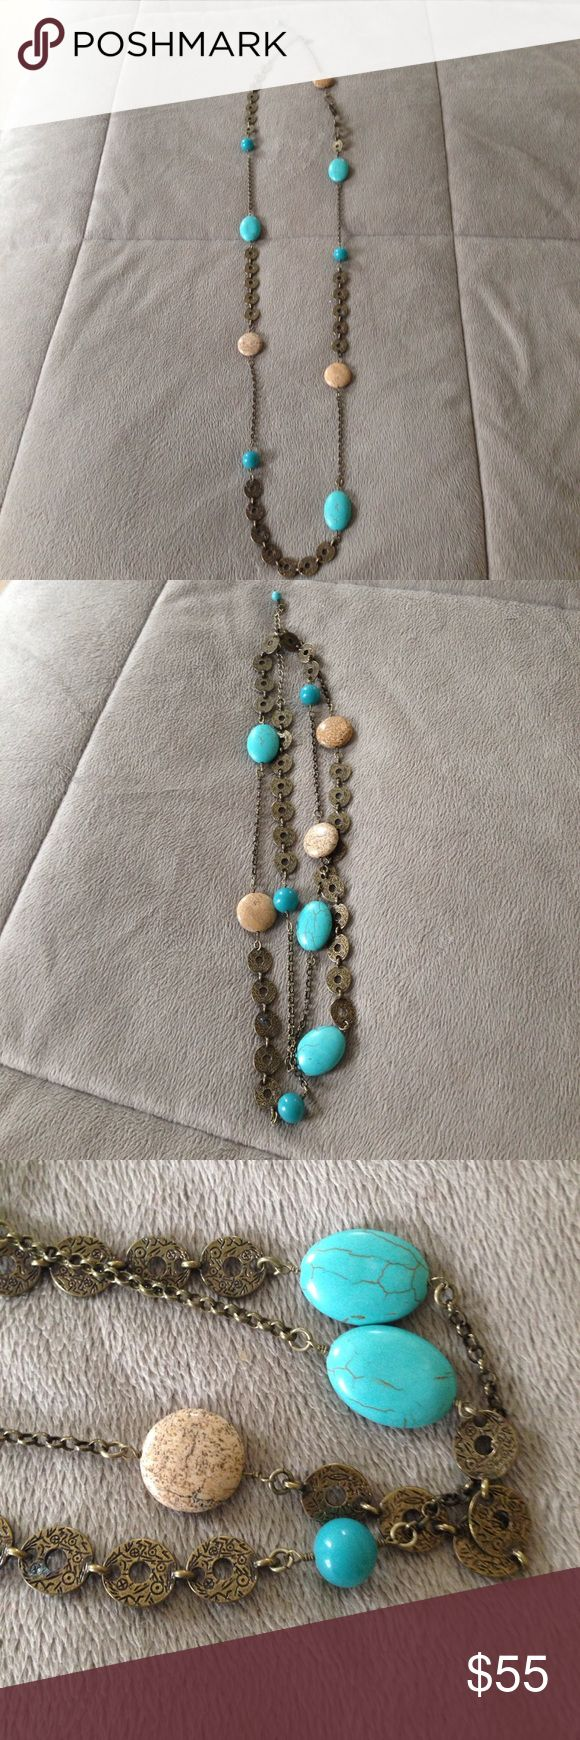 Lia Sophia necklace Authentic Lia Sophia stone necklace. Can be worn long or doubled for a layered look. Excellent condition. Never wore it. Mint! Lia Sophia Jewelry Necklaces